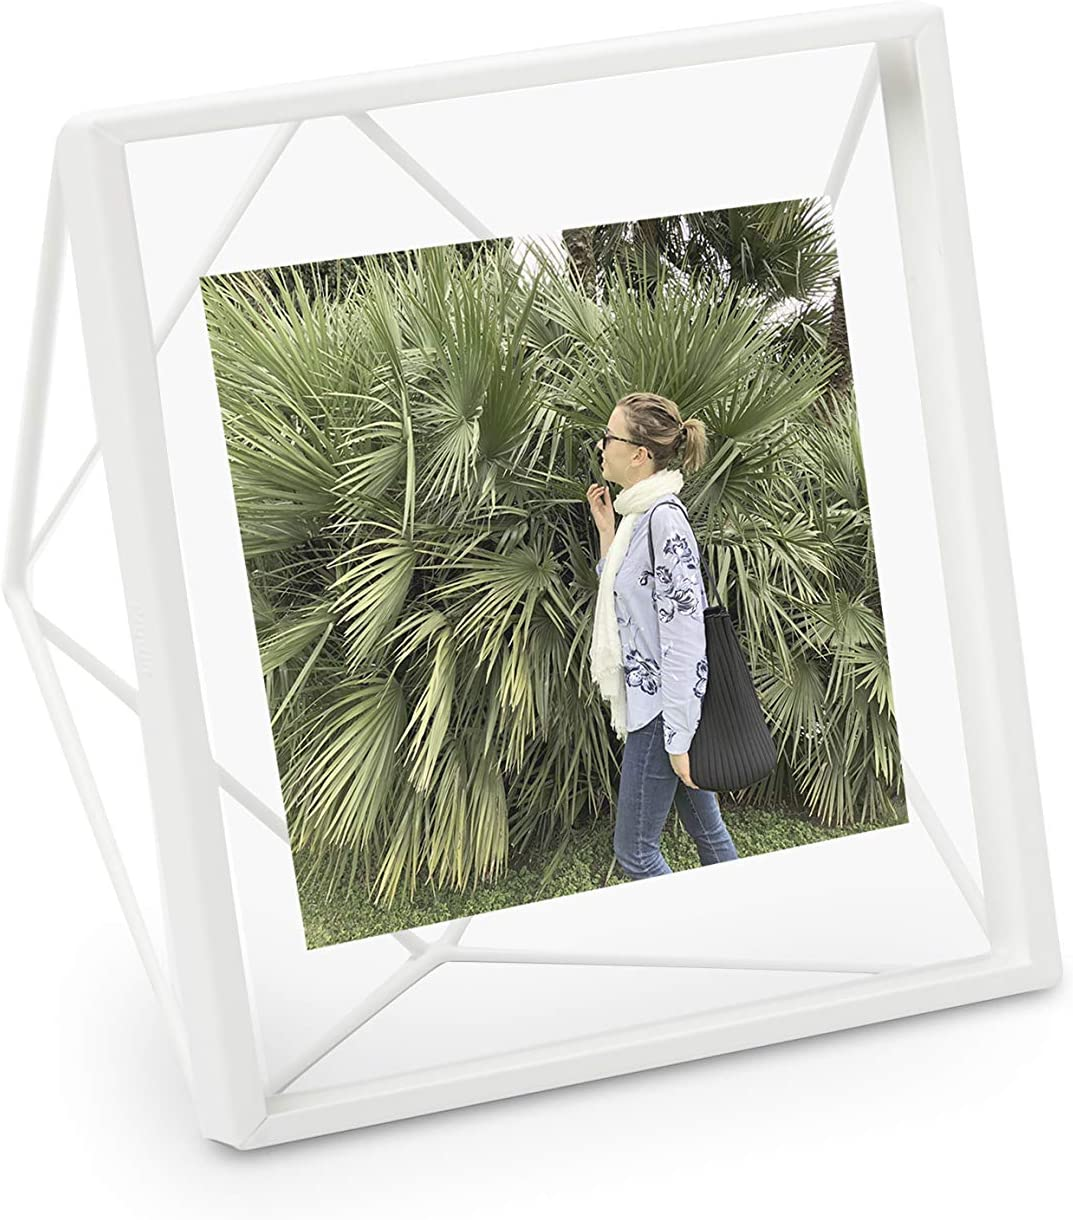 """Umbra, White Prisma 4x4 Picture Frame for Desktop or Wall, Holds One 4""""x4"""" Photo, 4 by 4-Inch"""